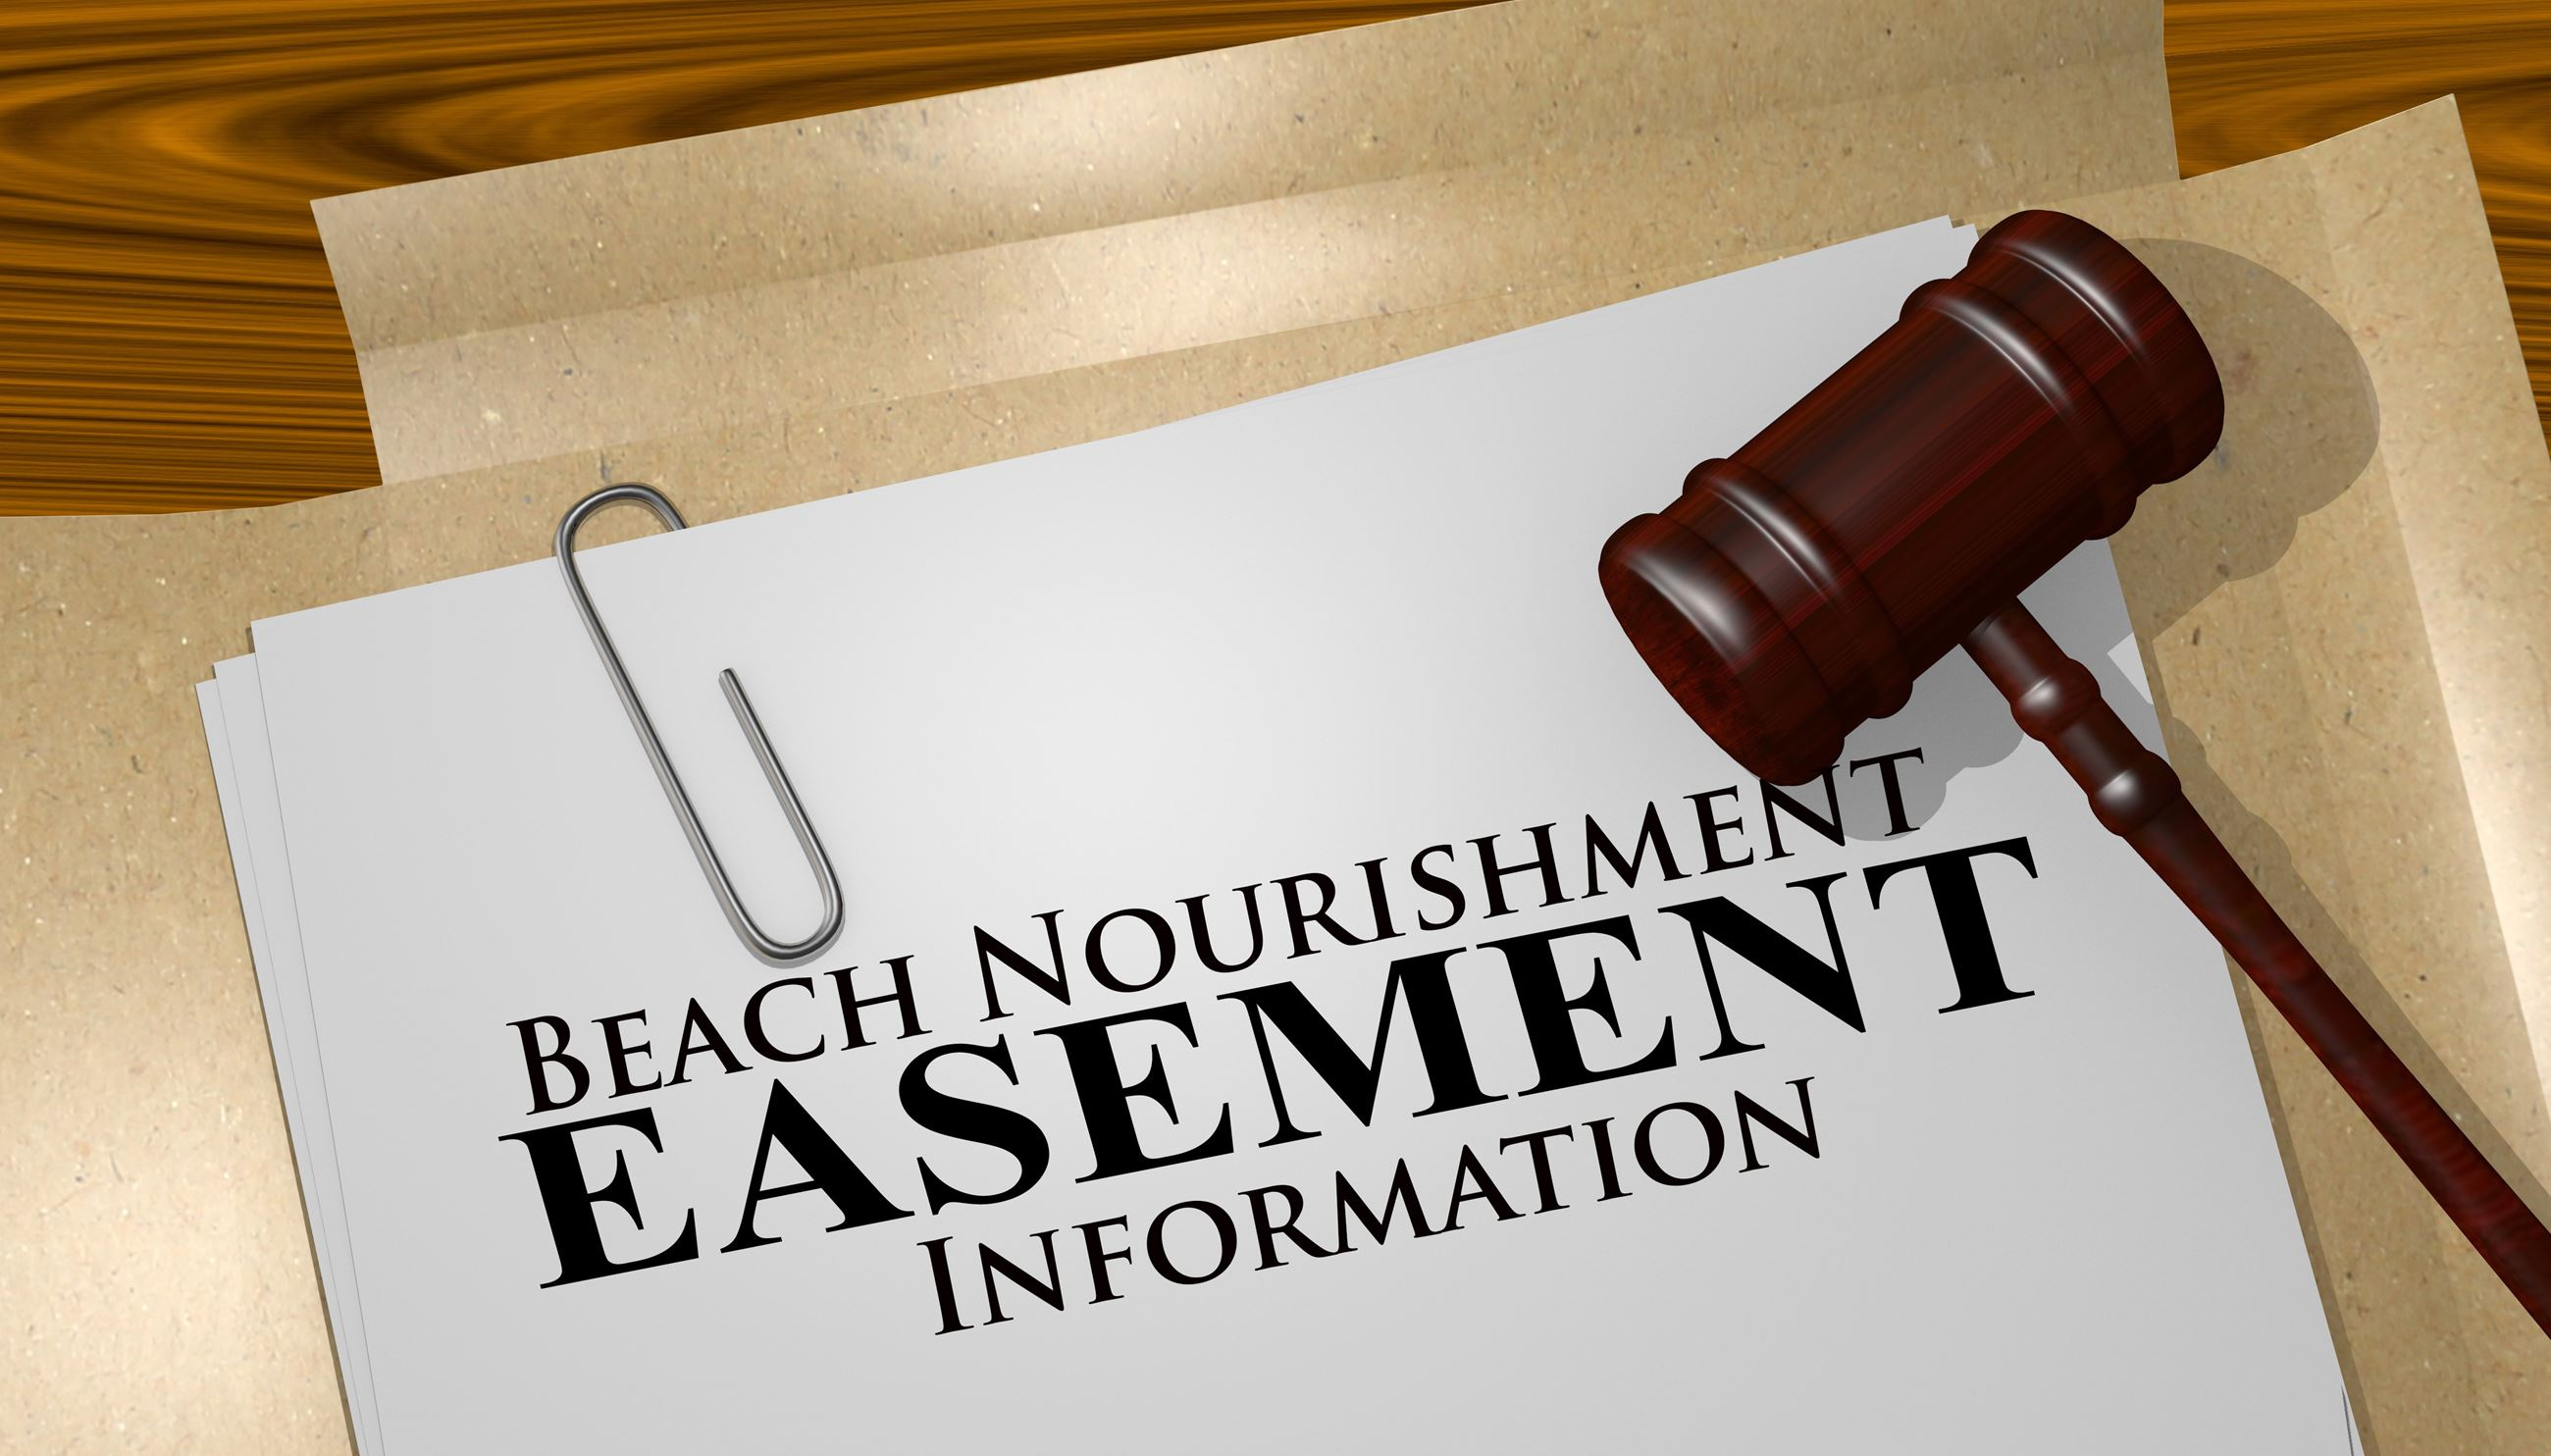 Image Beach Nourishment Easement